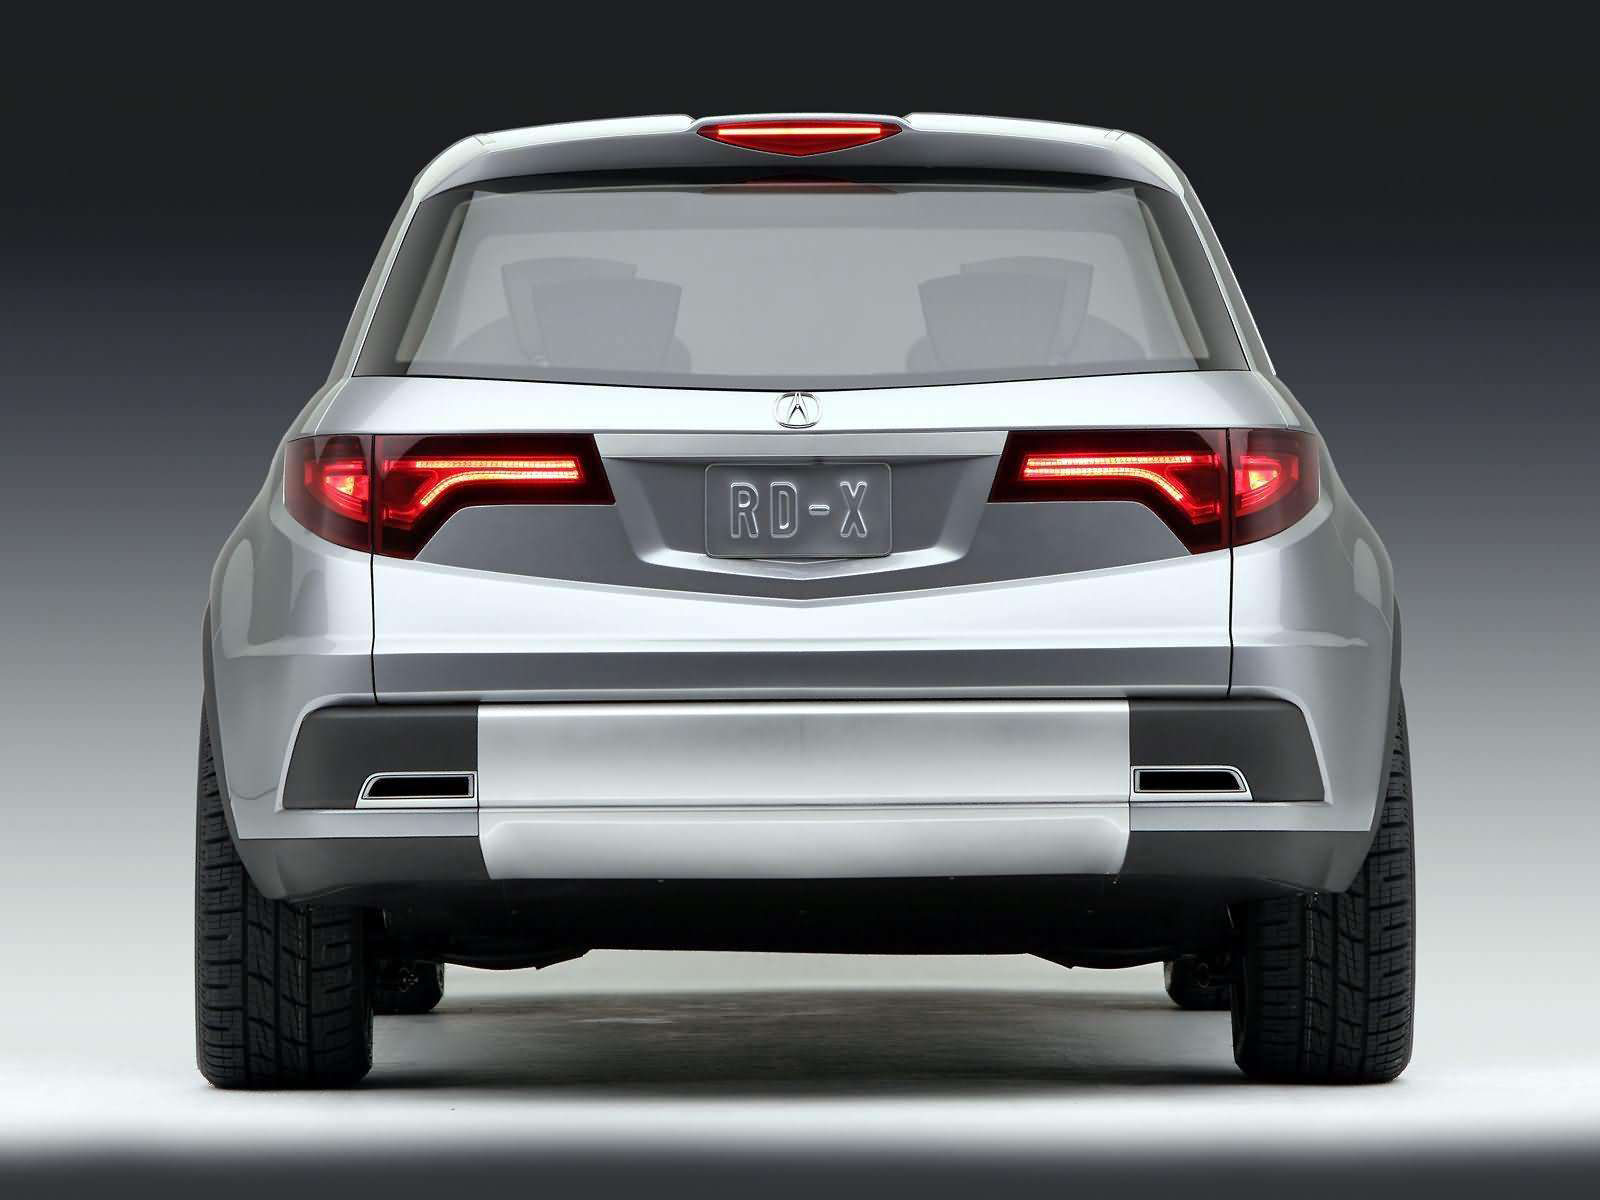 2005 Acura RDX Concept photo - 2